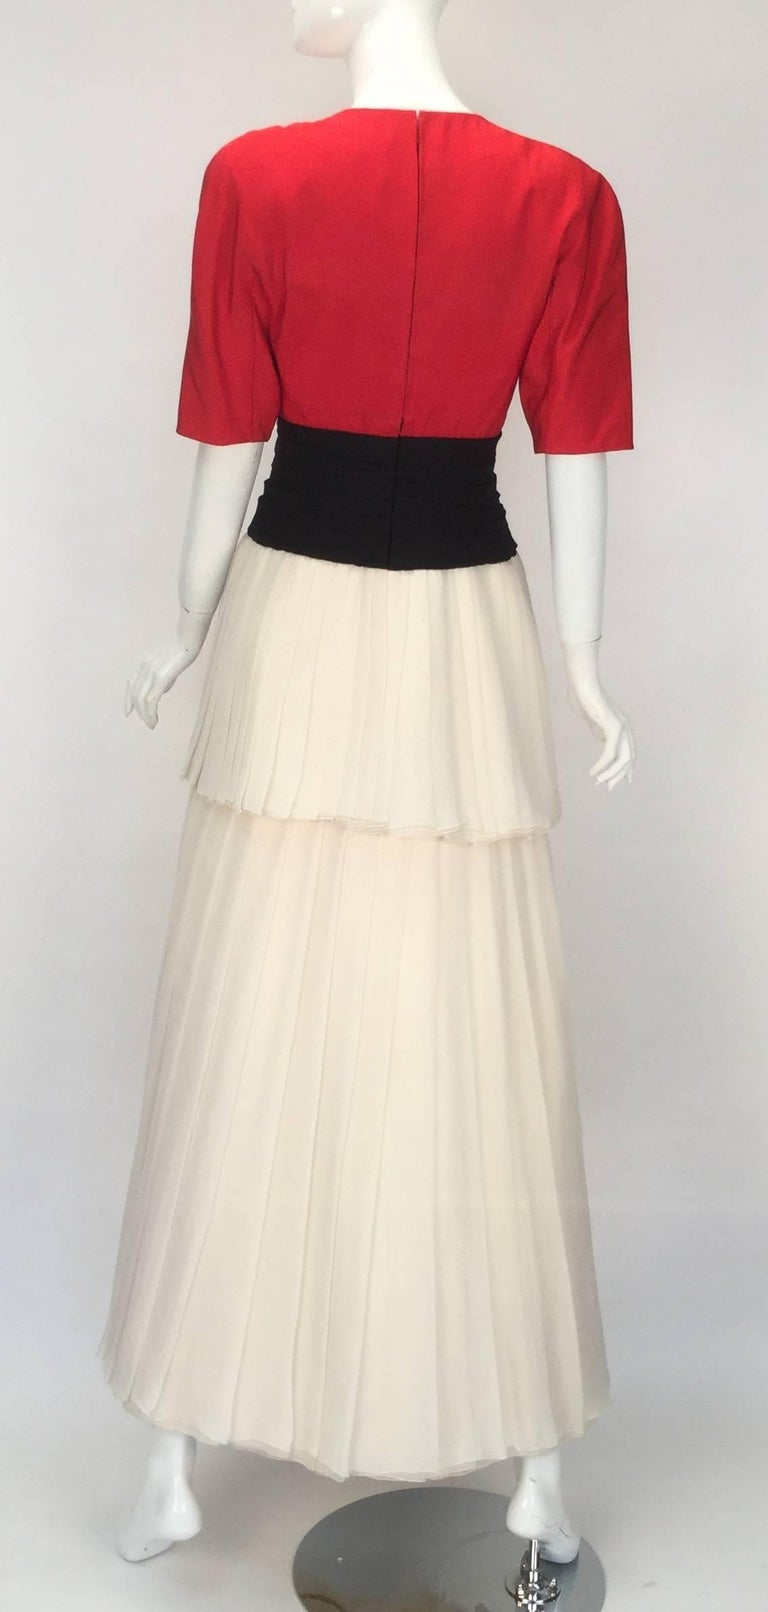 1980s Christian Dior Haute Couture Silk Evening Dress In Excellent Condition For Sale In Houston, TX